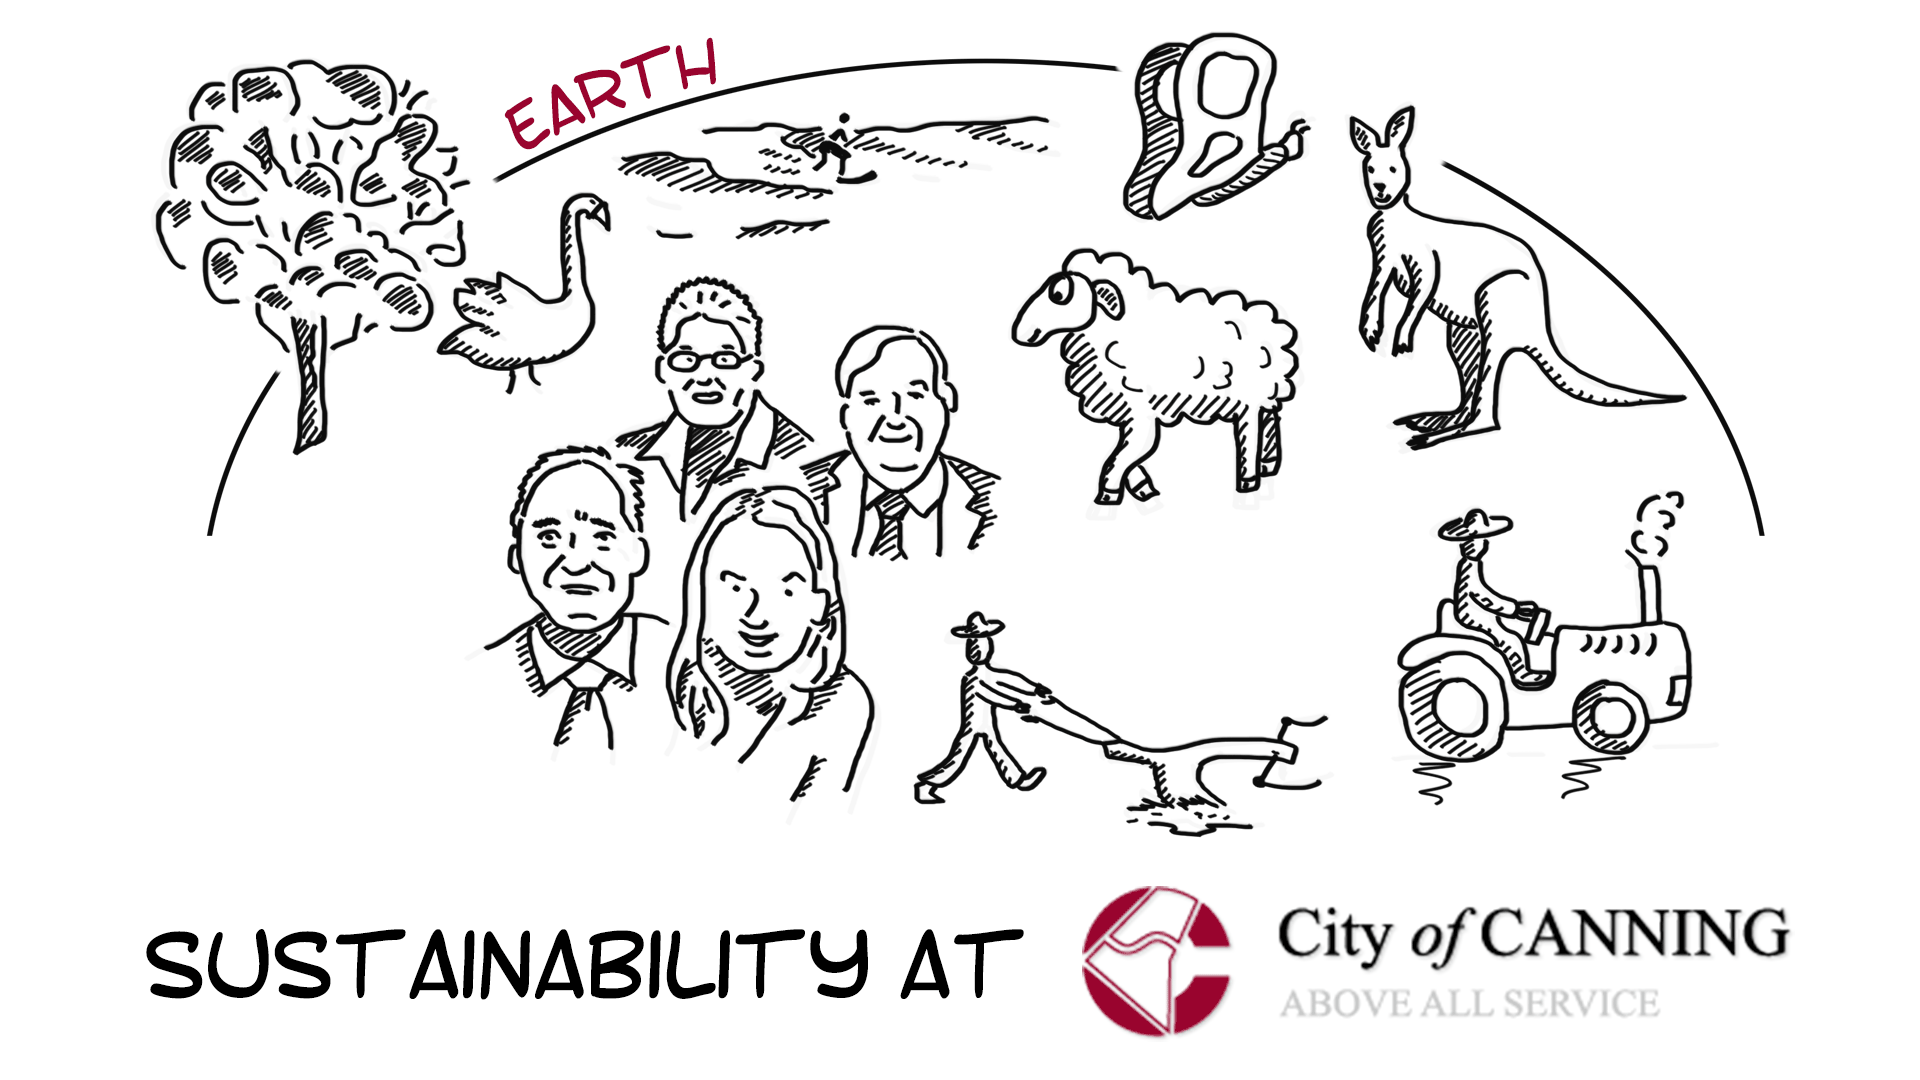 Sustainability-City-of-Canning